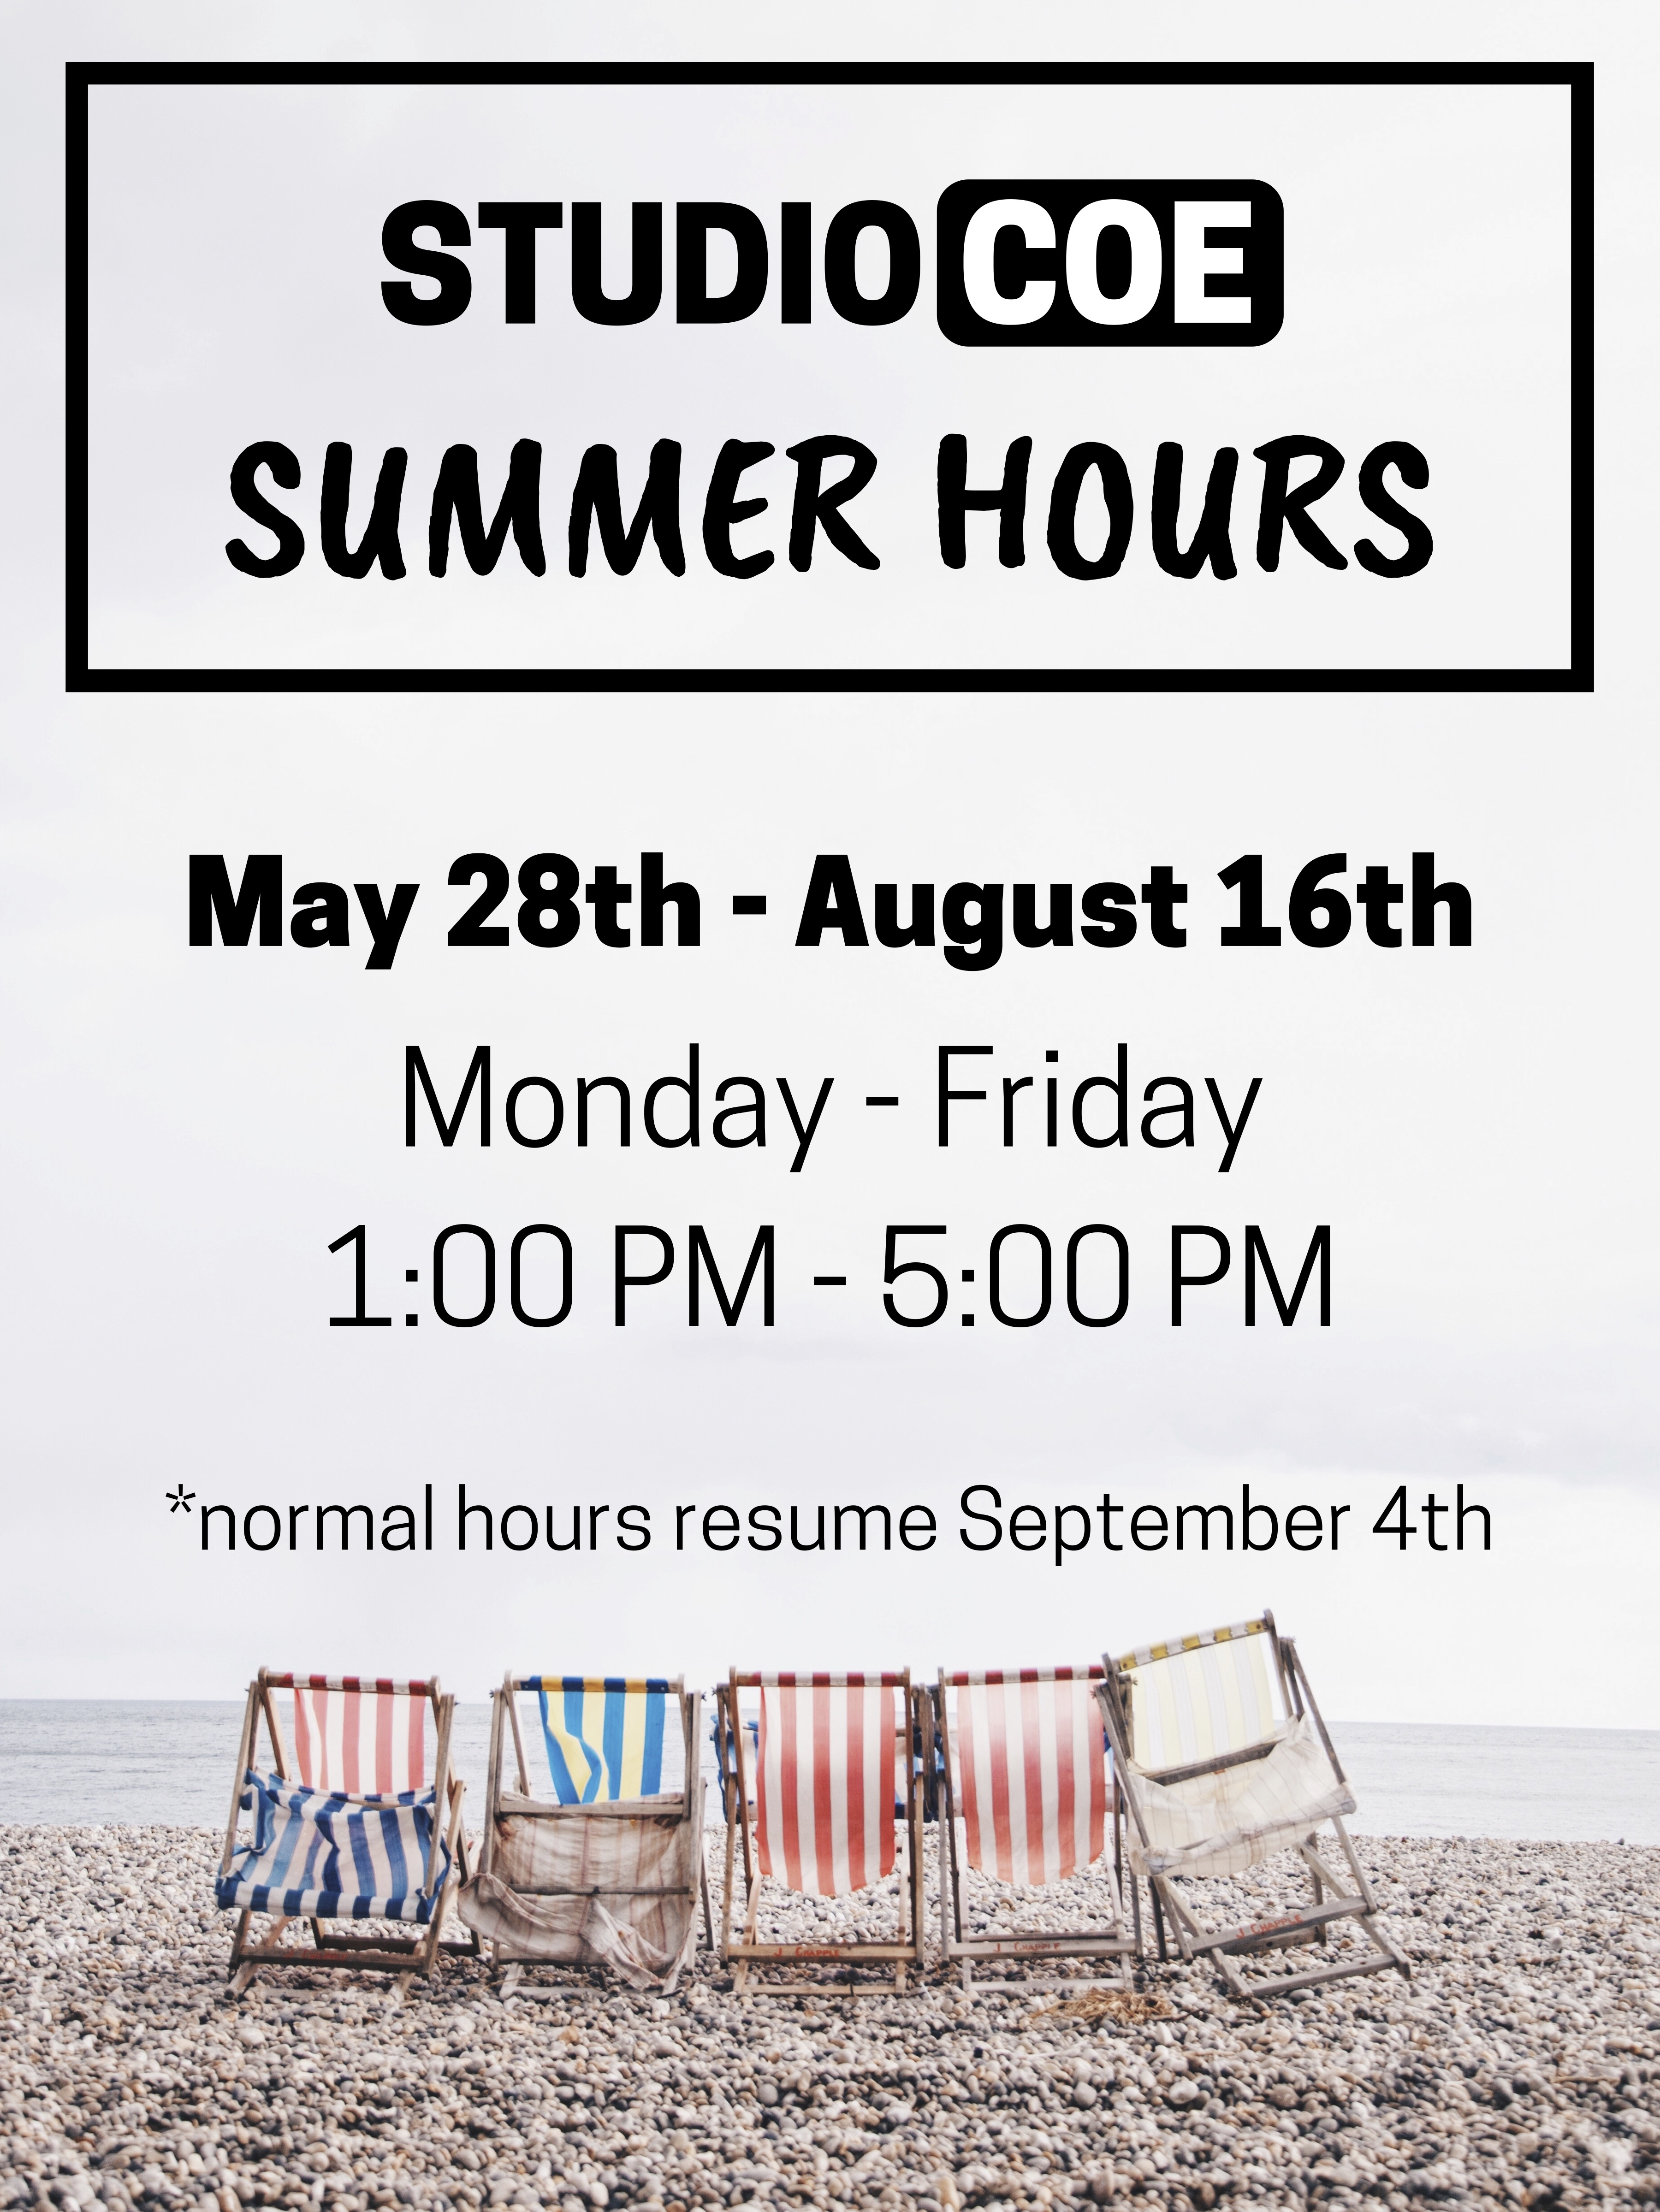 Studio Coe Summer Hours, May 28 to August 16, Monday through Friday, 1:00 PM to 5:00 PM. Normal hours will resume September 4.